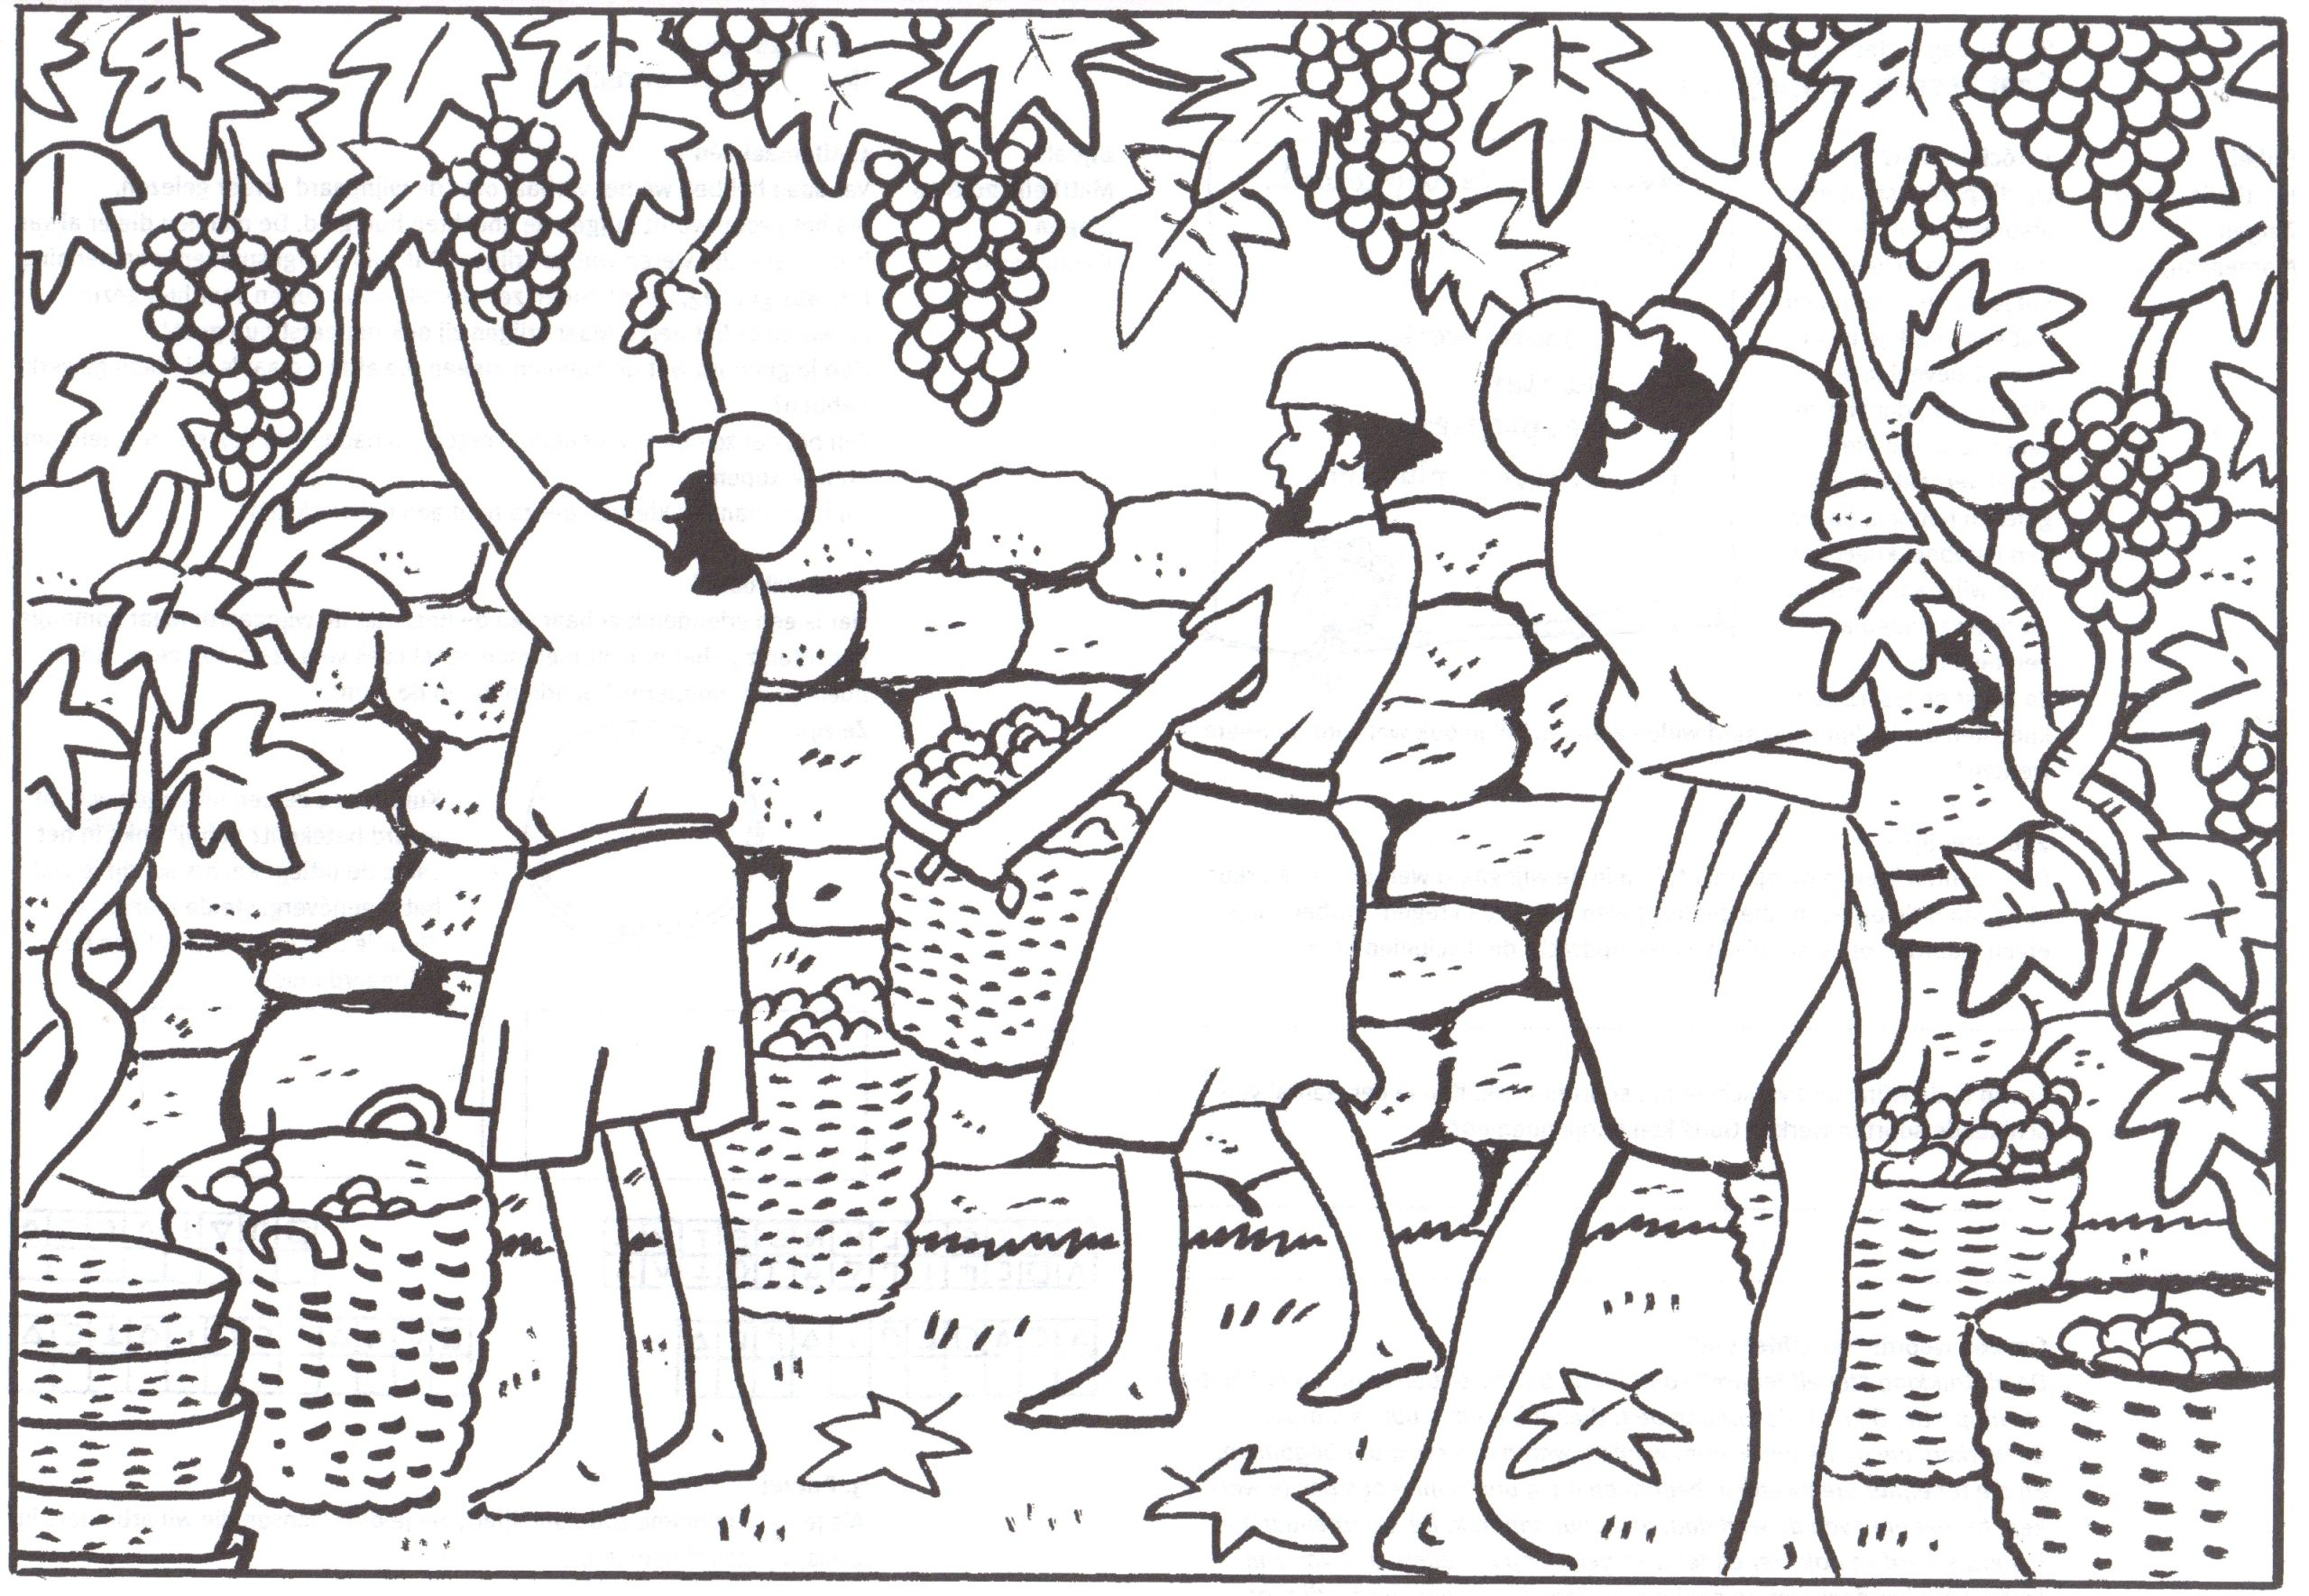 Parable Of the Workers In the Vineyard Coloring Pages Pin On Christian Coloring Pages Nt